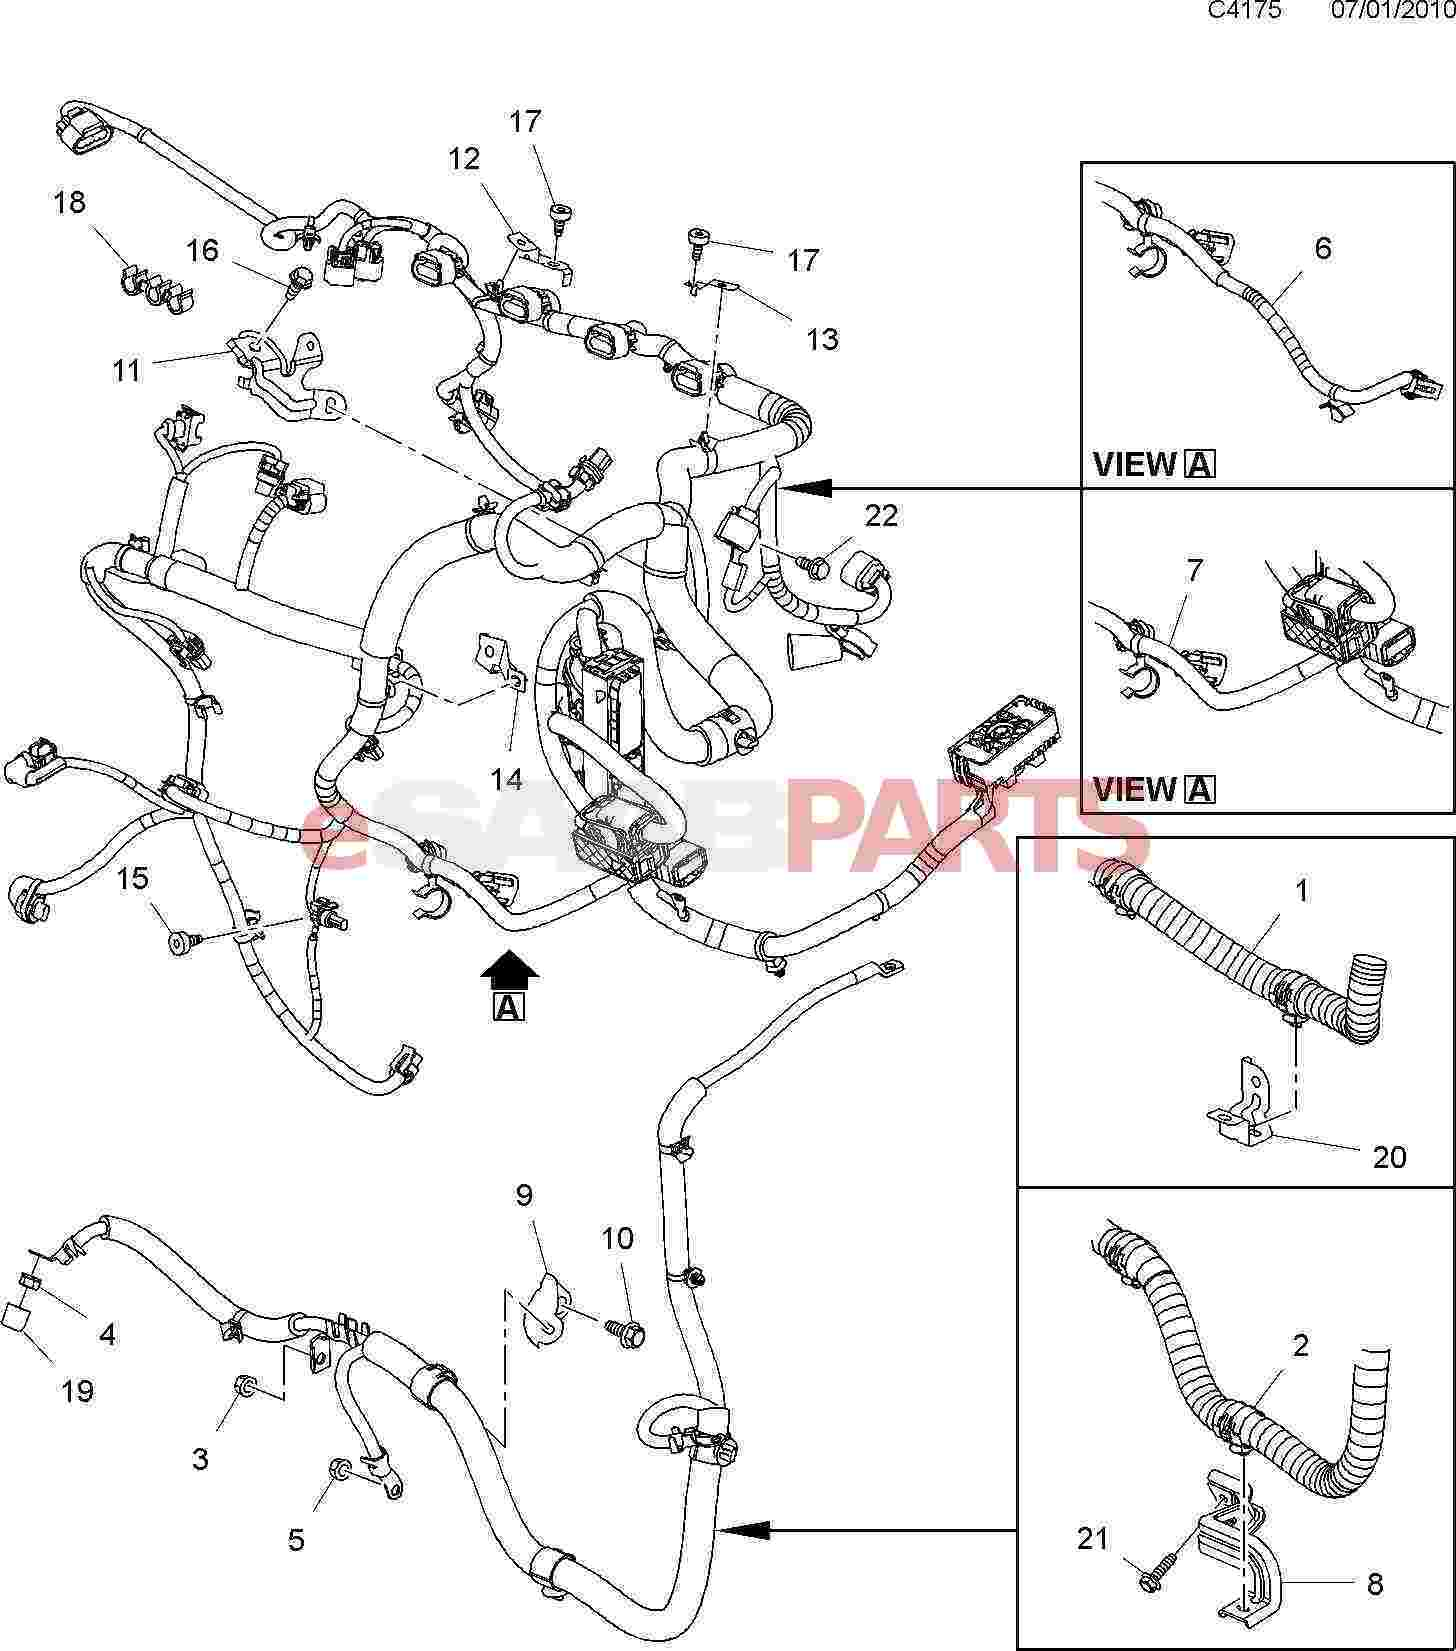 eSaabParts.com - Saab 9-5 (650) > Electrical Parts > Wiring Harness > Engine  - injection system